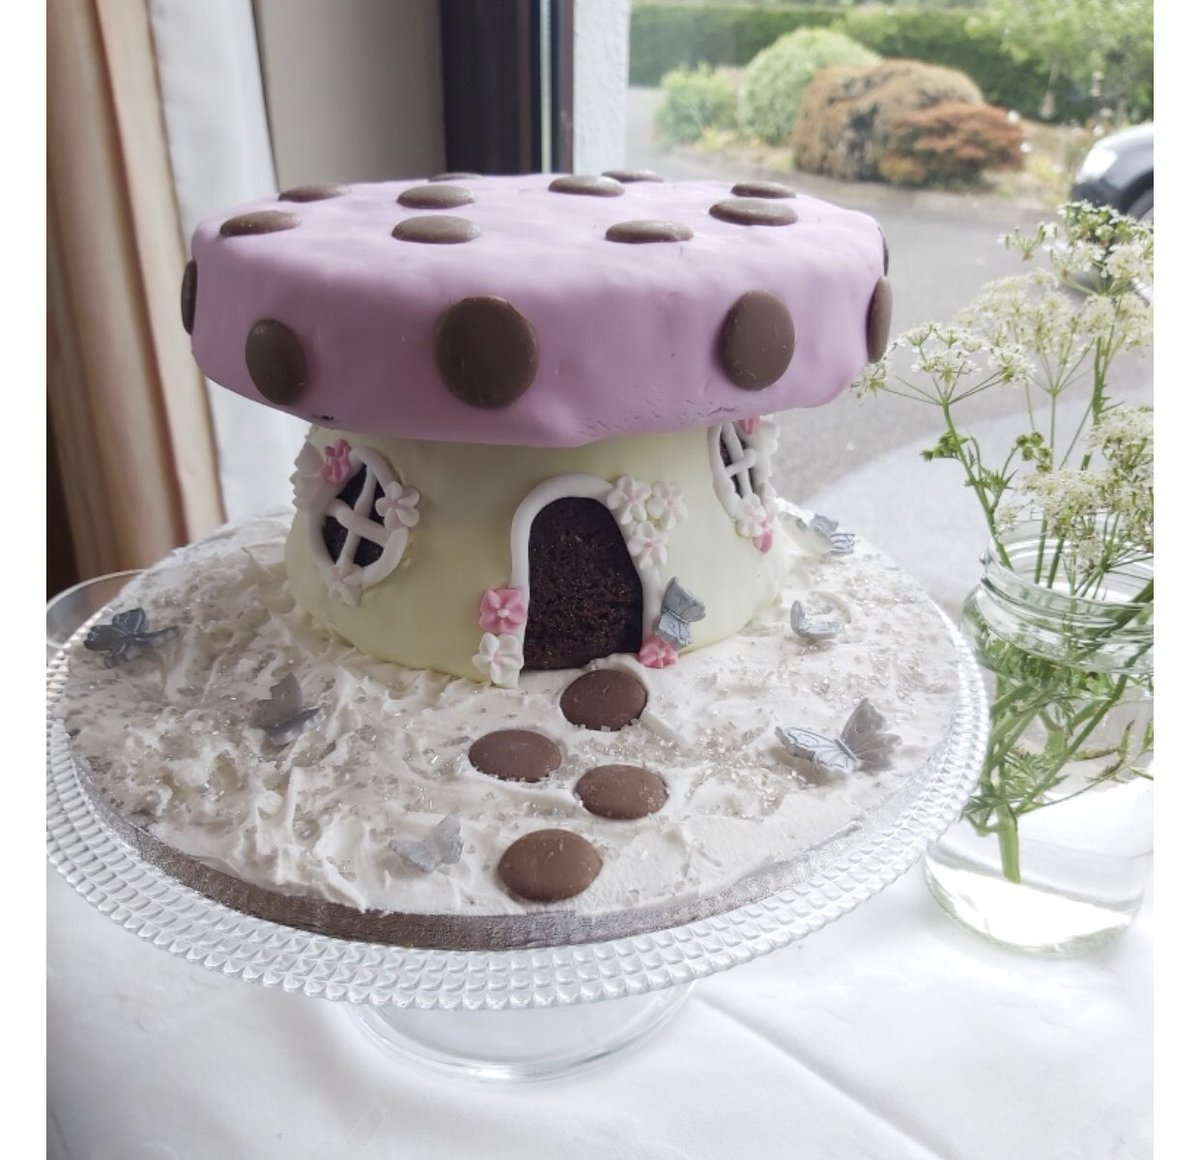 A beautiful entry from Sinead in Wexford of this gorgeous mushroom cake that she made during lockdown as part of #TheGreatCorkBakeOff https://t.co/thRN6qhVfe @TrigonHotels https://t.co/wAW3XAgIhc